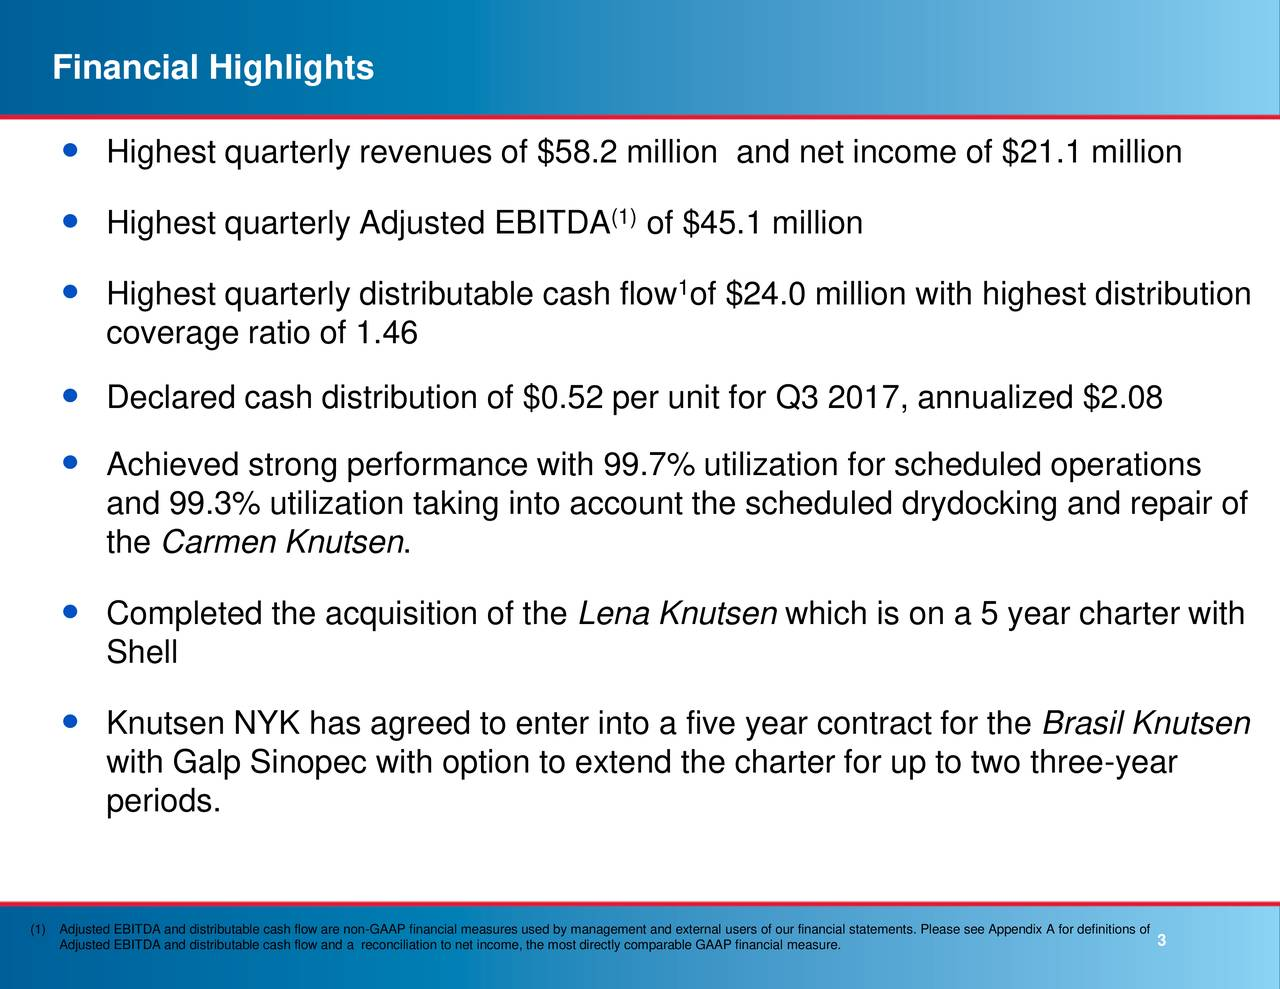  Highest quarterly revenues of $58.2 million and net income of $21.1 million (1)  Highest quarterly Adjusted EBITDA of $45.1 million  Highest quarterly distributable cash flow of $24.0 million with highest distribution coverage ratio of 1.46  Declared cash distribution of $0.52 per unit for Q3 2017, annualized $2.08  Achieved strong performance with 99.7% utilization for scheduled operations and 99.3% utilization taking into account the scheduled drydocking and repair of the Carmen Knutsen.  Completed the acquisition of the Lena Knutsen which is on a 5 year charter with Shell  Knutsen NYK has agreed to enter into a five year contract for the Brasil Knutsen with Galp Sinopec with option to extend the charter for up to two three-year periods. (1Adjusted EBITDA and distributable cash flow are non-GAAP financial measures used by management and external users of our financial statements. Please see Appendix A for definitions of Adjusted EBITDA and distributable cash flow and a reconciliation to net income, the most directly comparable GAAP financial measure.